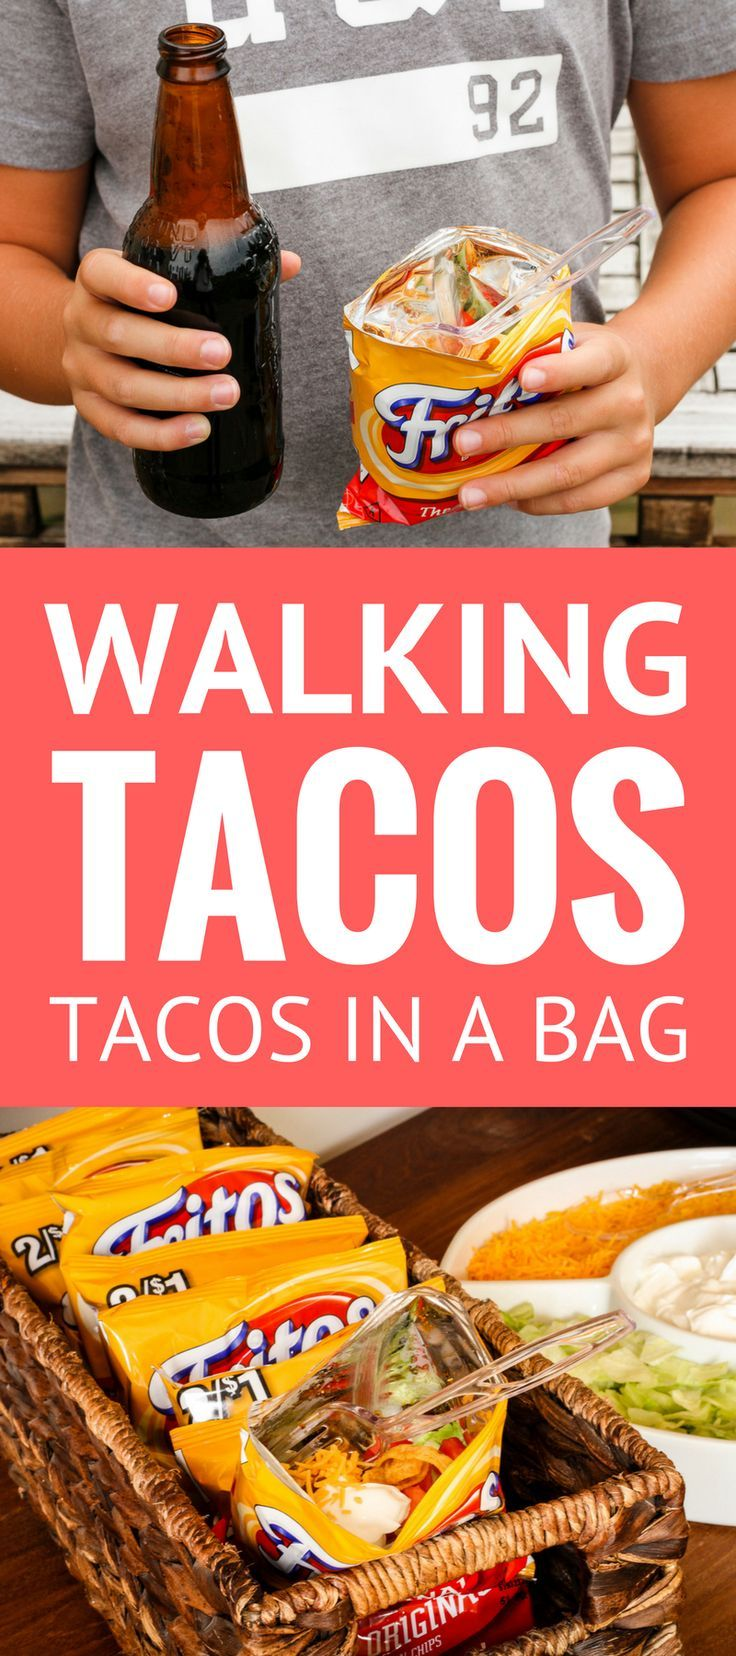 Walking Tacos Recipe -- These little tacos in a bag are equally perfect for game day get togethers or busy school nights, even camping… So simple and easy to make! Pinned over 140,000 times! | taco in a bag | how to make walking tacos | frito chili pie | walking taco bar | walking tacos camping | find the recipe on unsophisticook.com